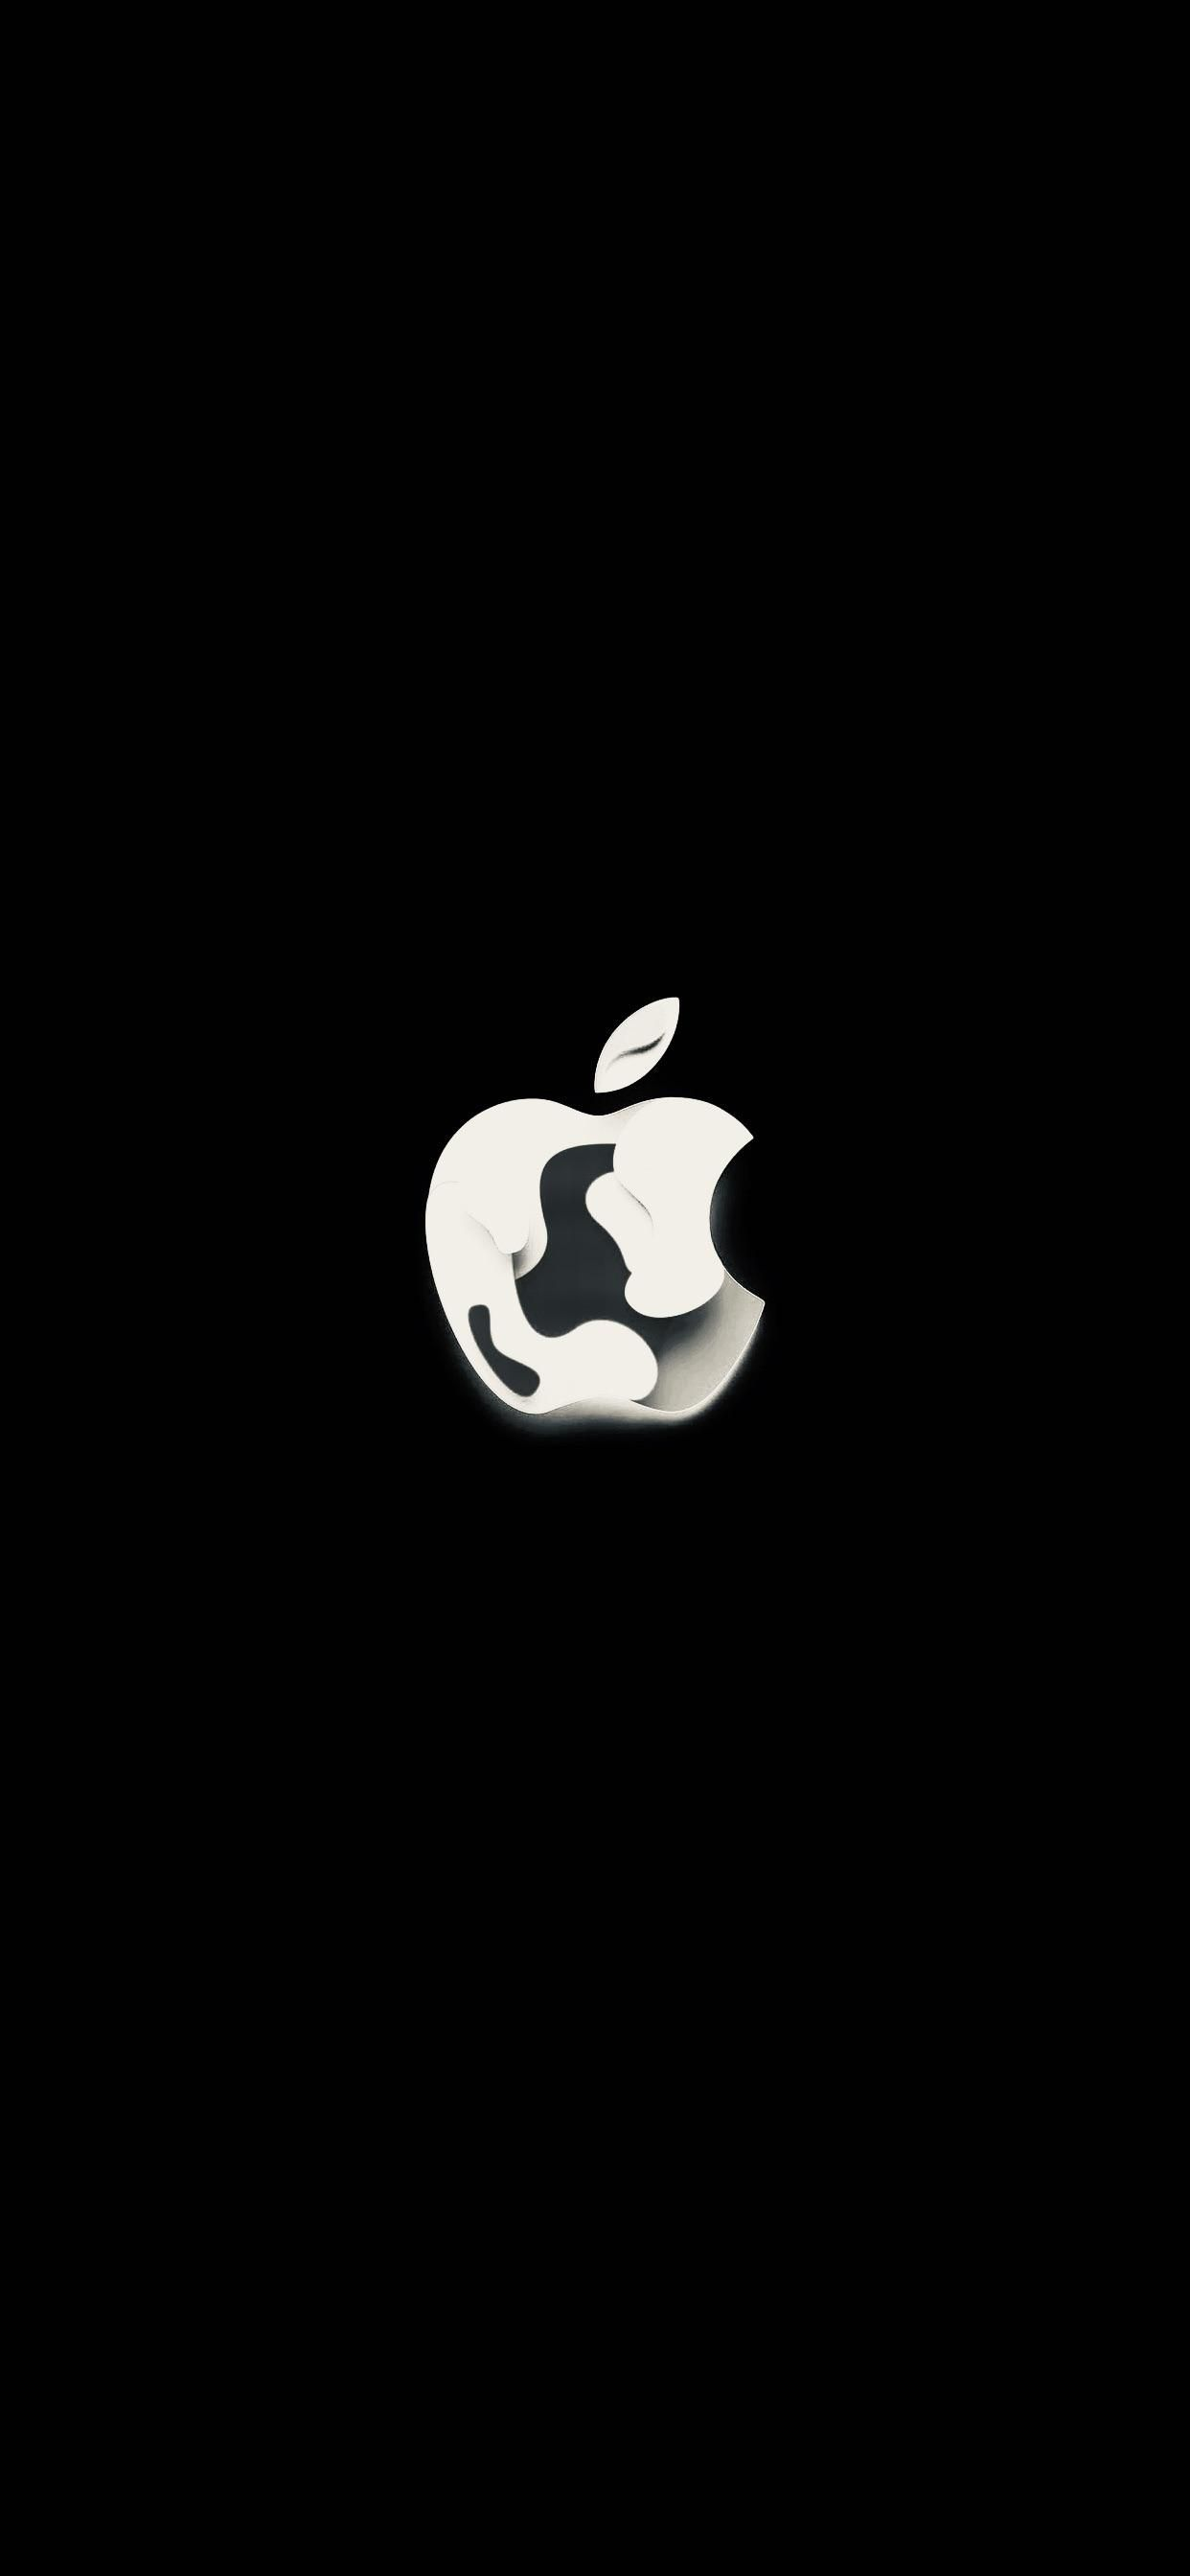 Apple Logo Black and White